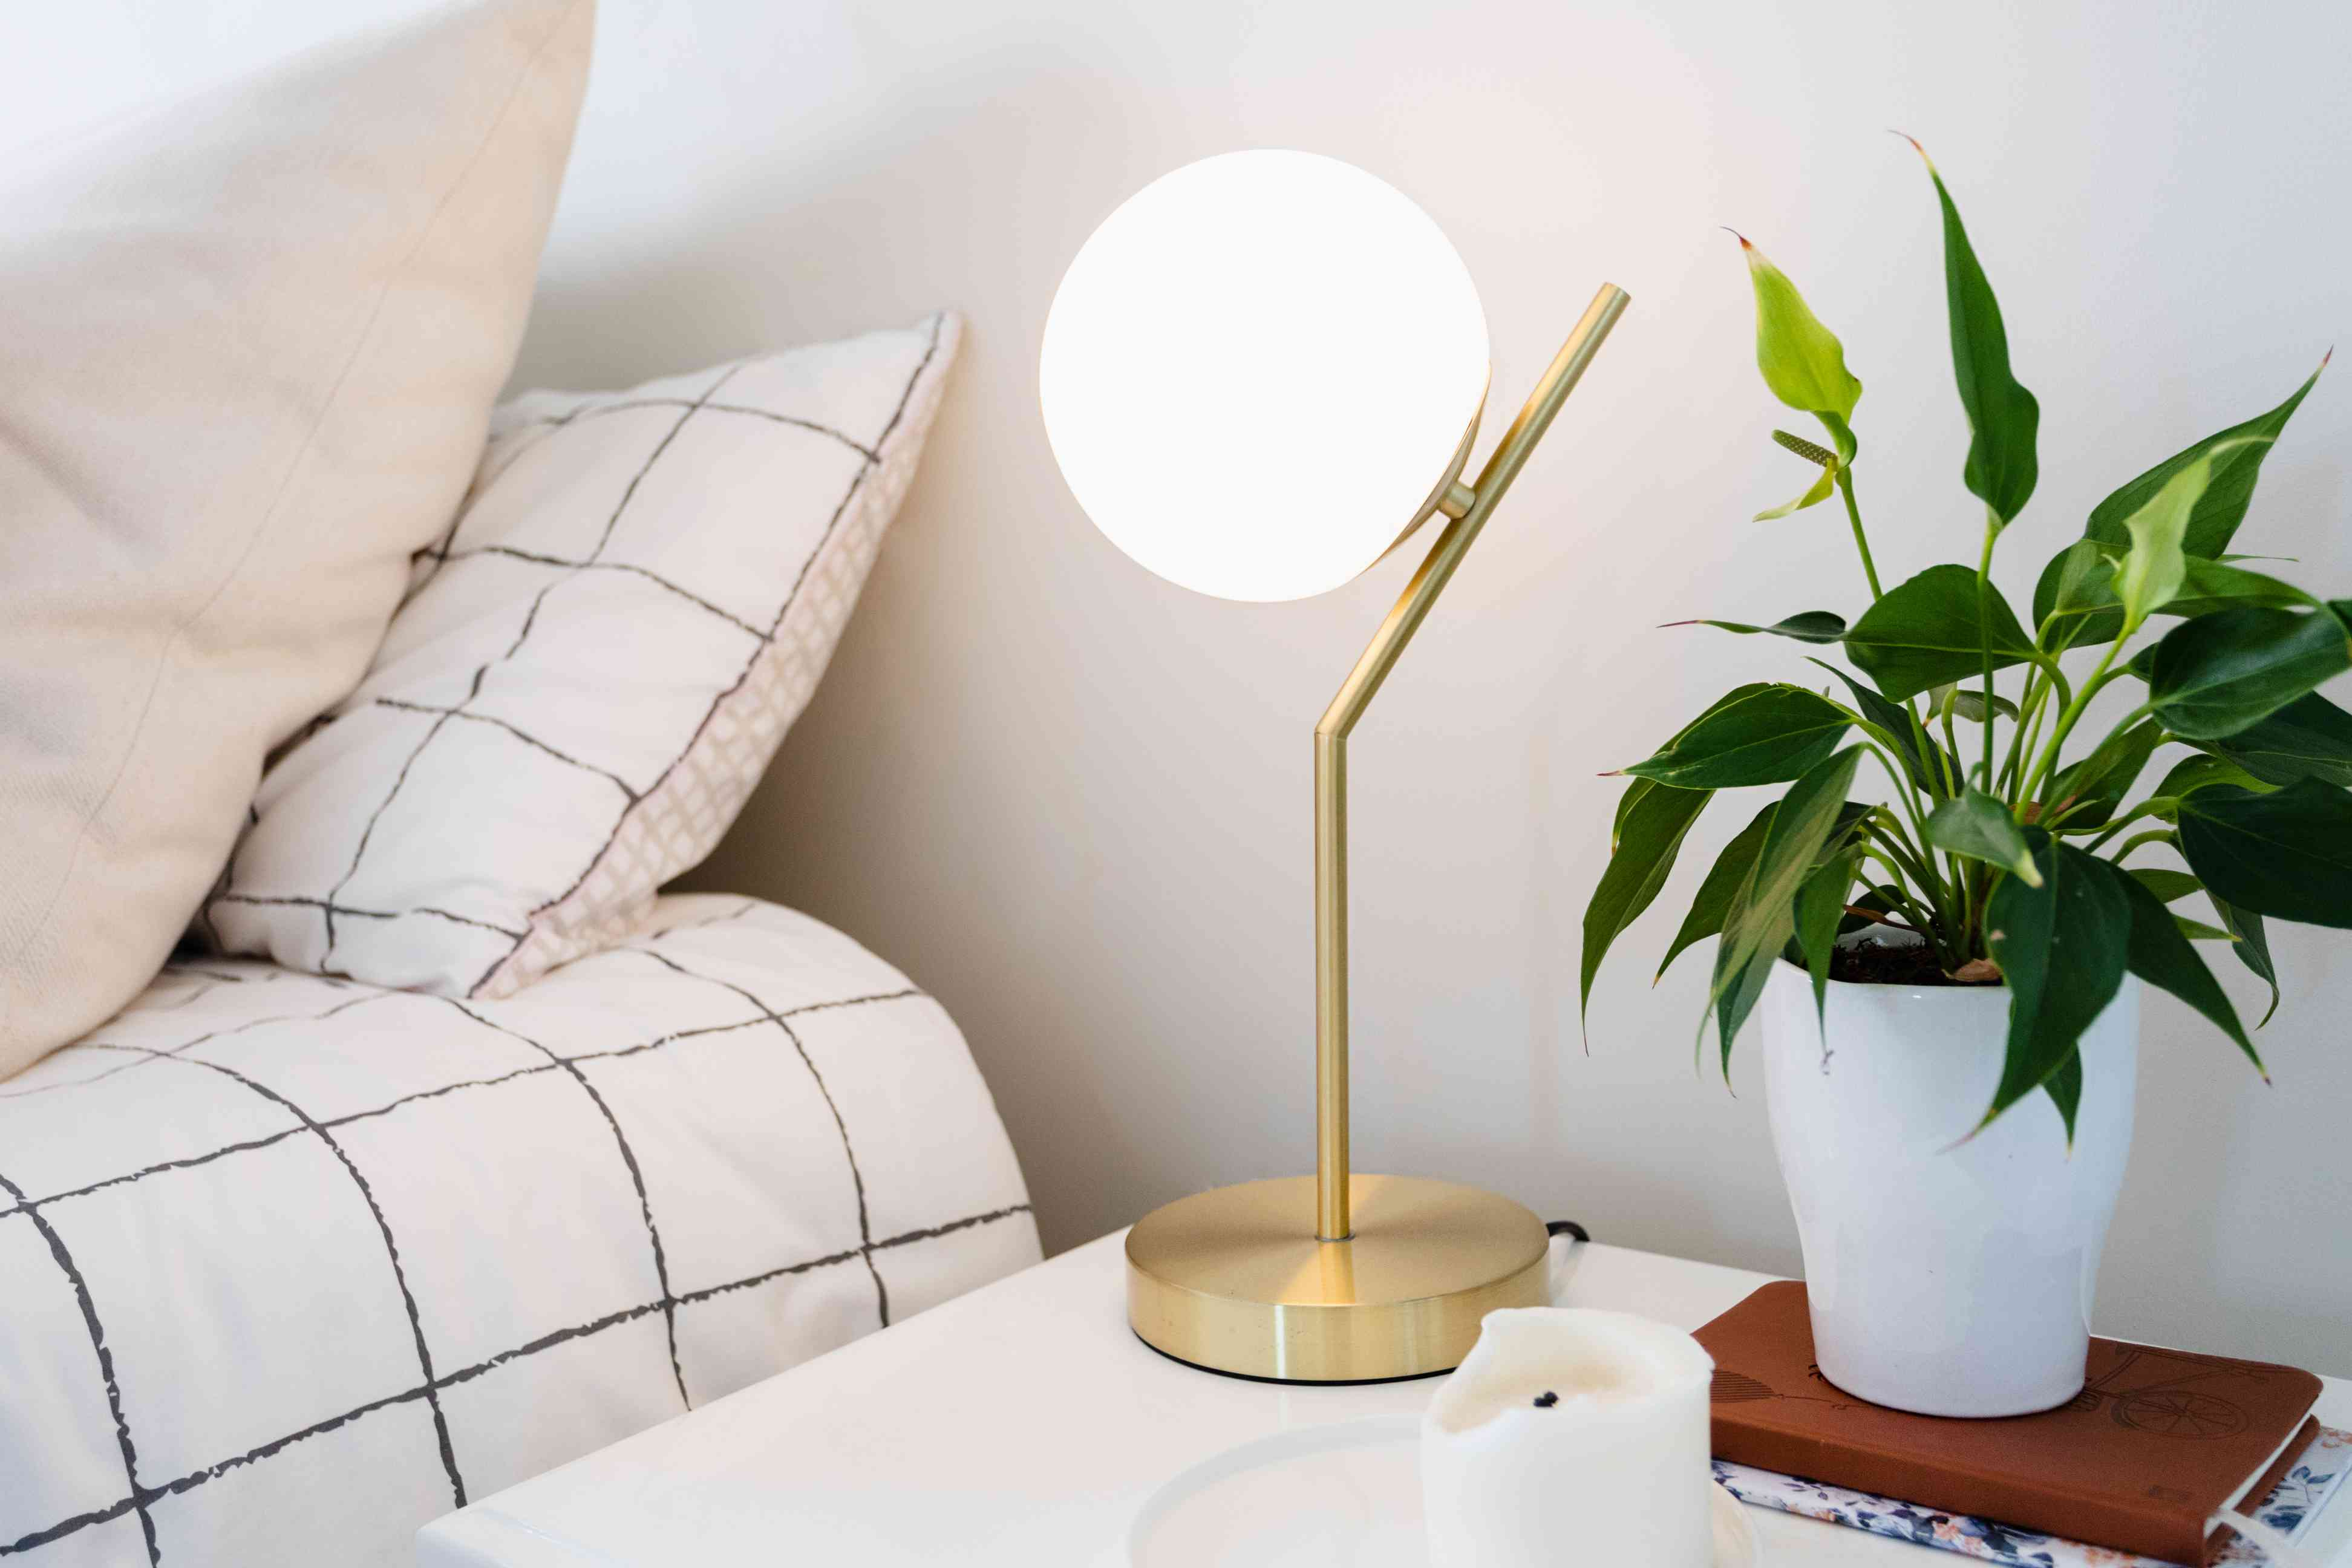 Lighted gold lamp with orb next to potted plant and bed